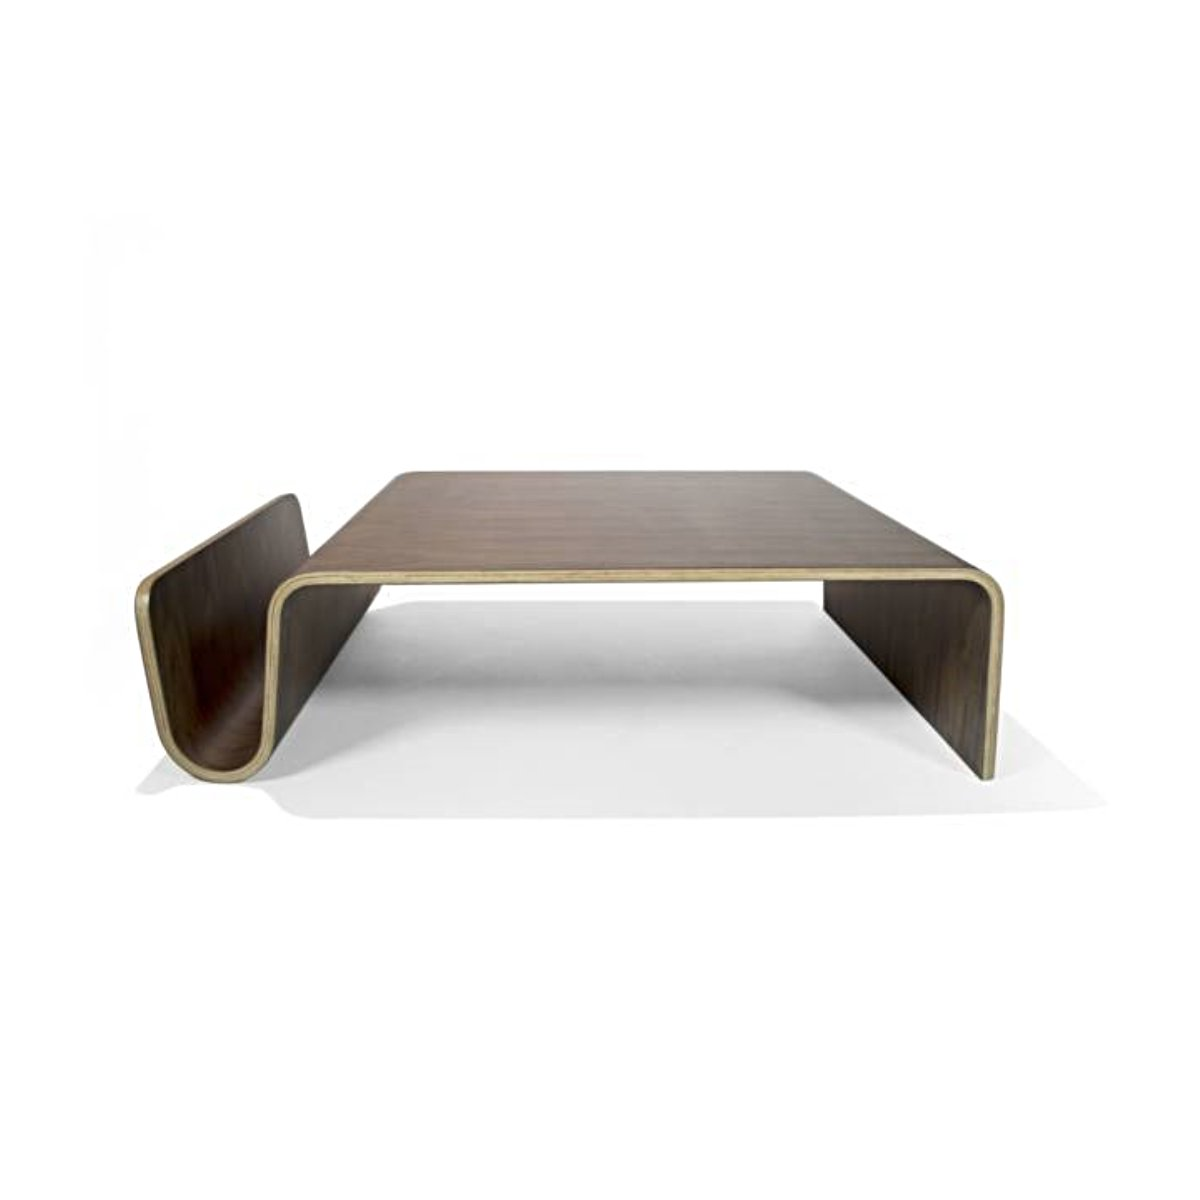 Reproduction Of Eric Pfeiffer Scando Coffee Table ...